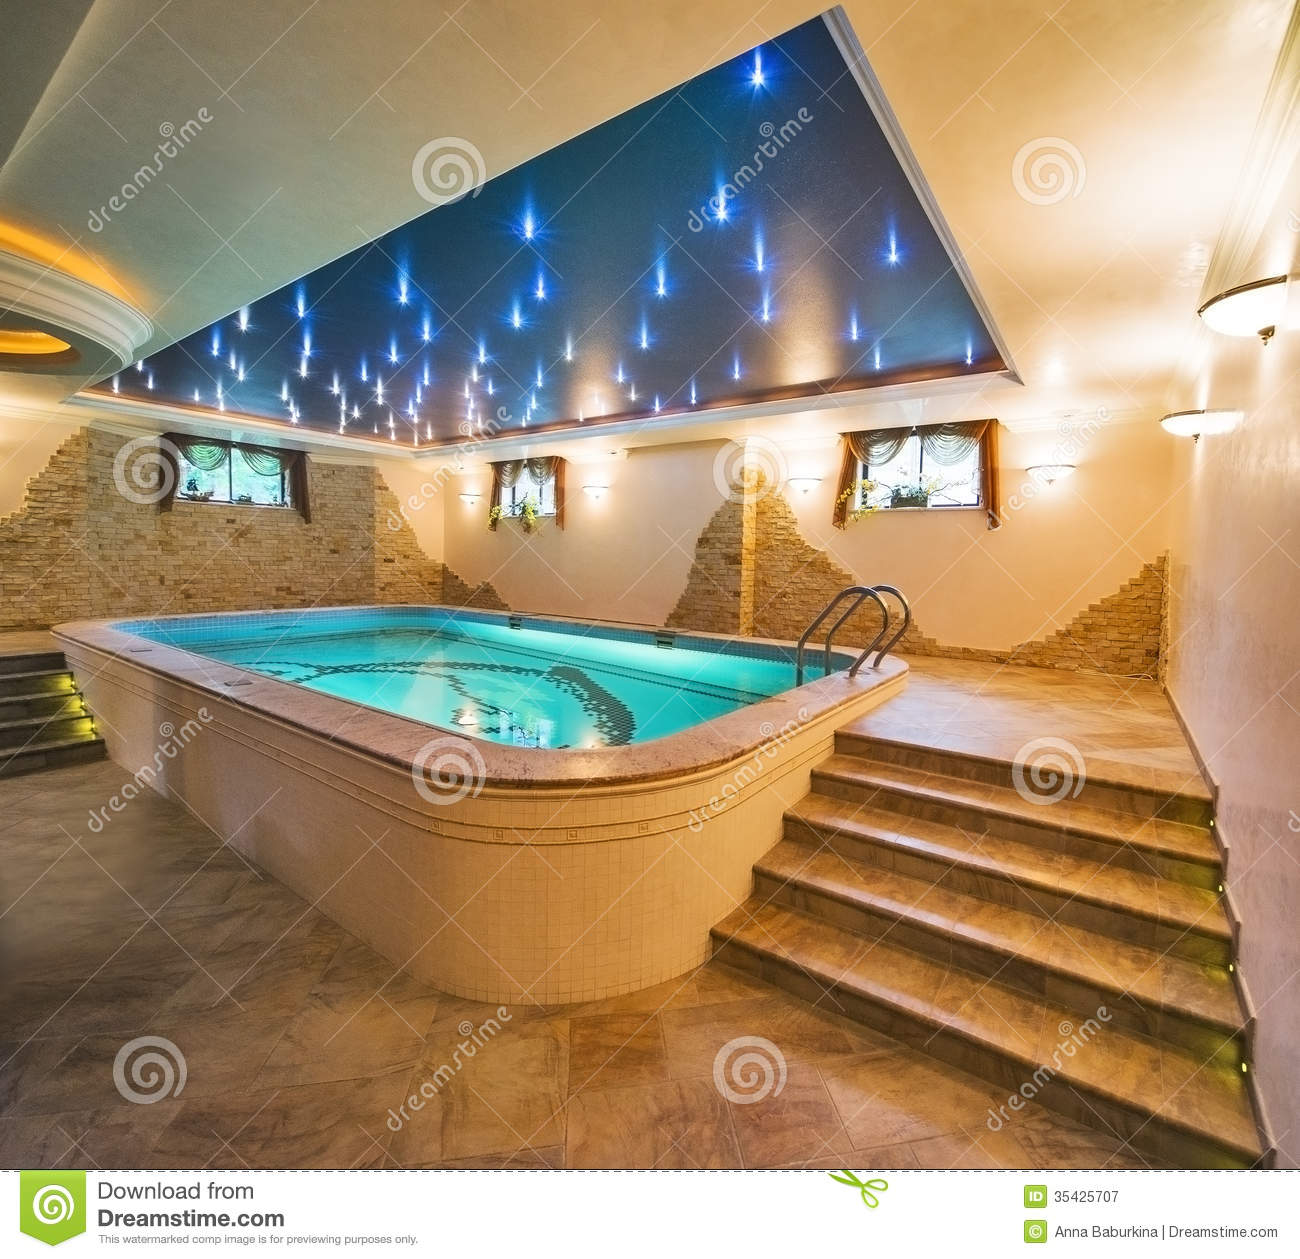 Luxury Home Indoor Swimming Pools: Luxury Swimming Pool Stock Image. Image Of Lifestyle